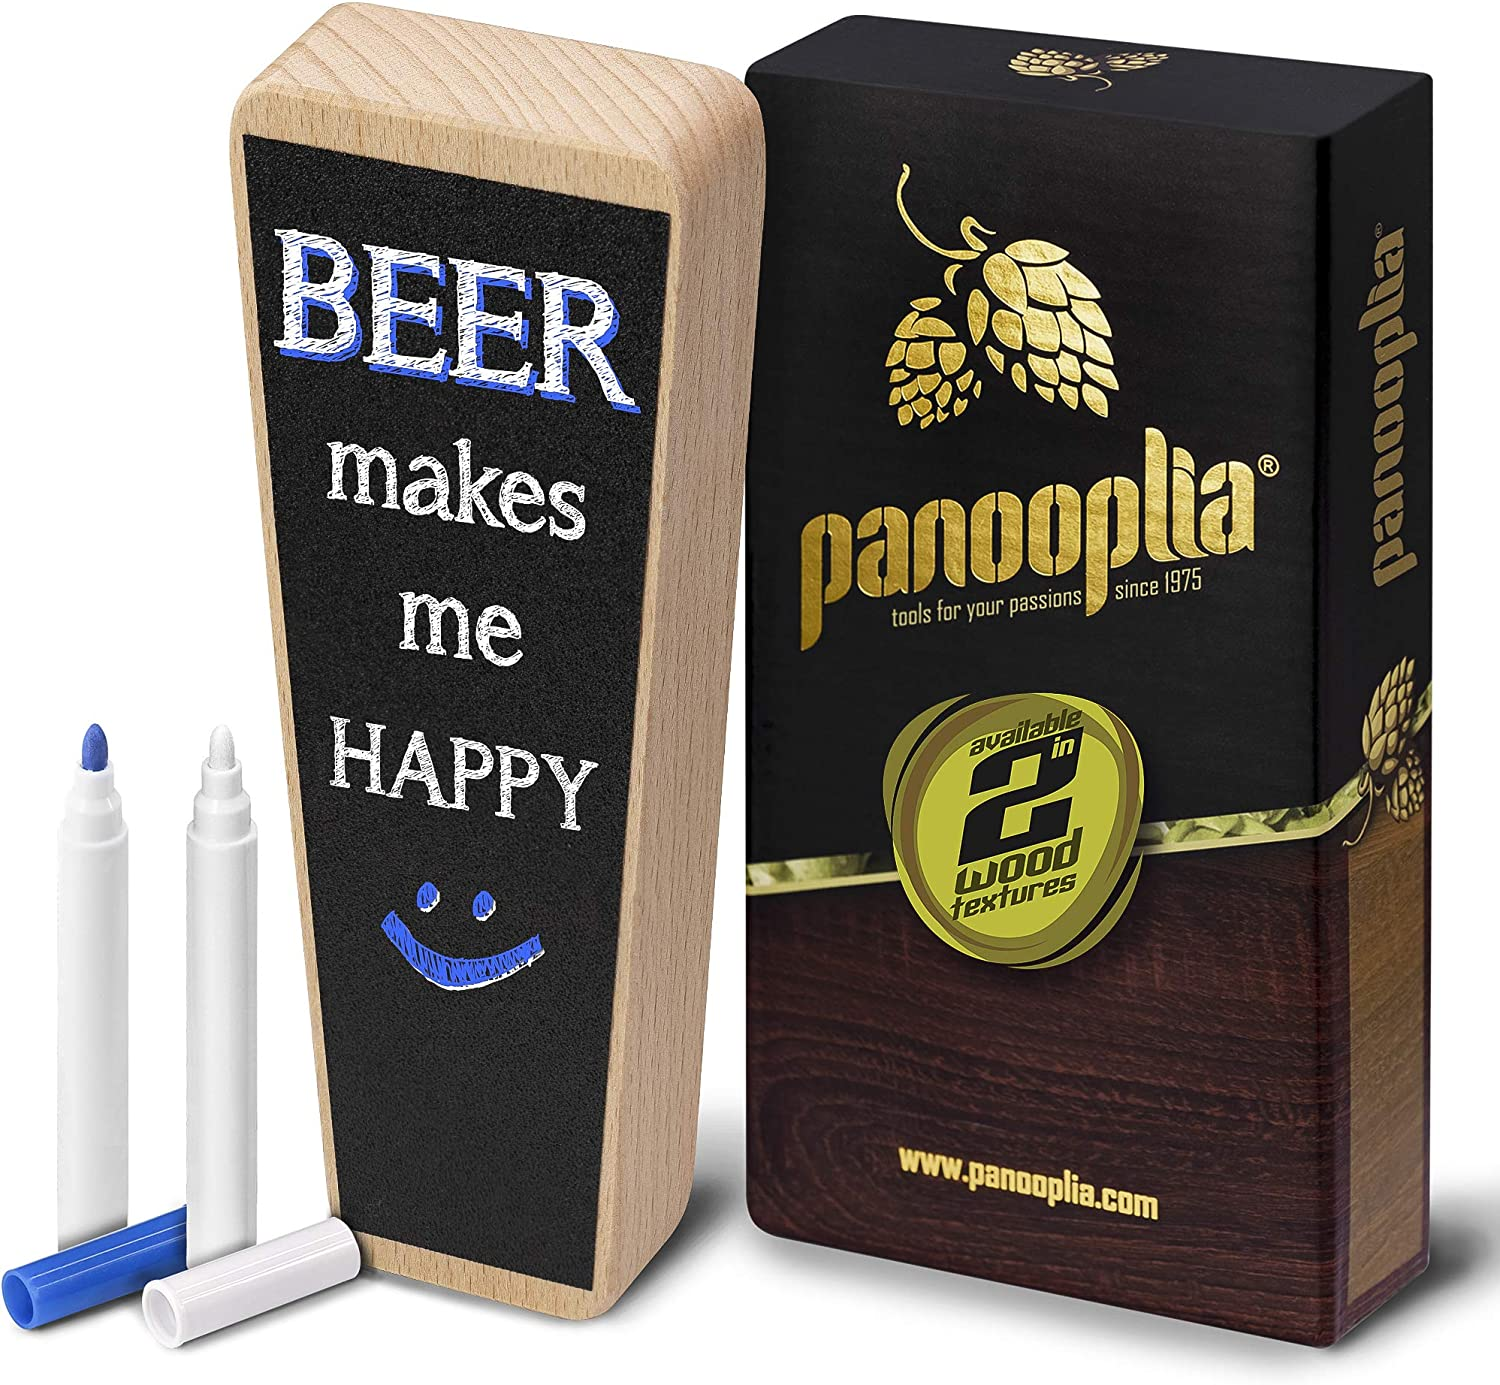 Beer Tap Handle and Two Liquid Chalk Markers Set - Wooden Keg Tap Handle for Standard Faucets and Kegerators with Reusable Chalkboard - Suitable for Home Brew, Bars, Kegs and Draft Beer (Beechwood)